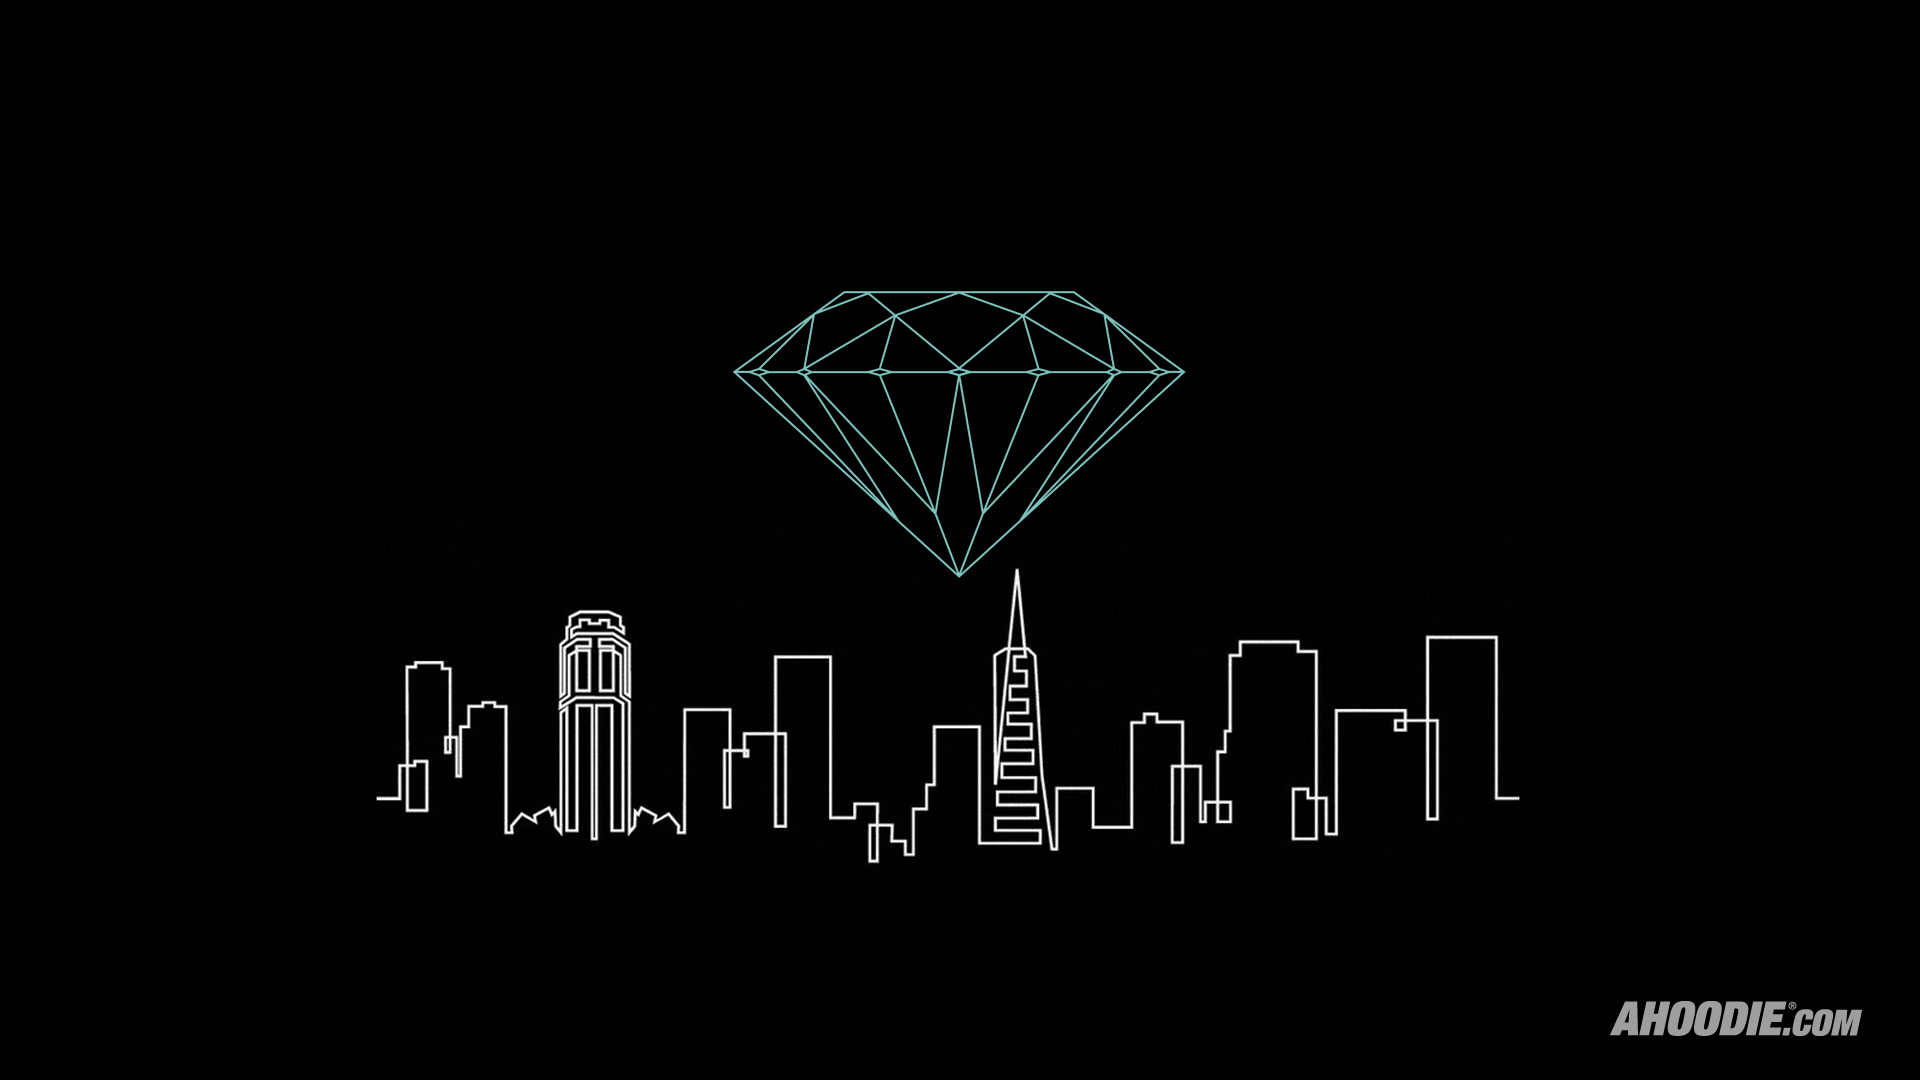 78 Best images about Diamond co on Pinterest | iPhone backgrounds